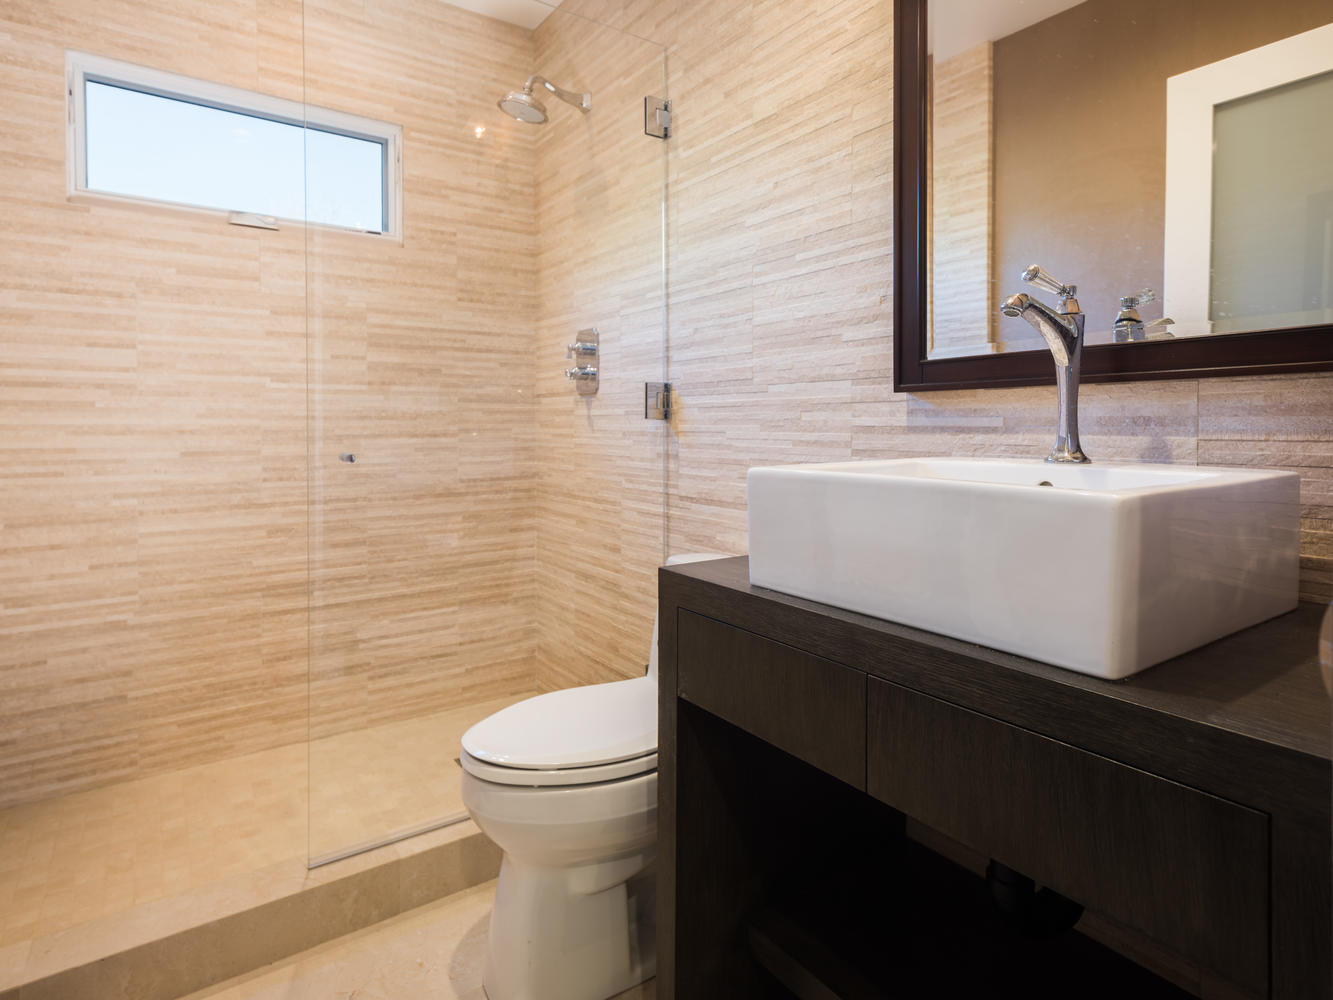 571 Radcliffe Ave Pacific-large-023-21-Bathroom-1334x1000-72dpi.jpg